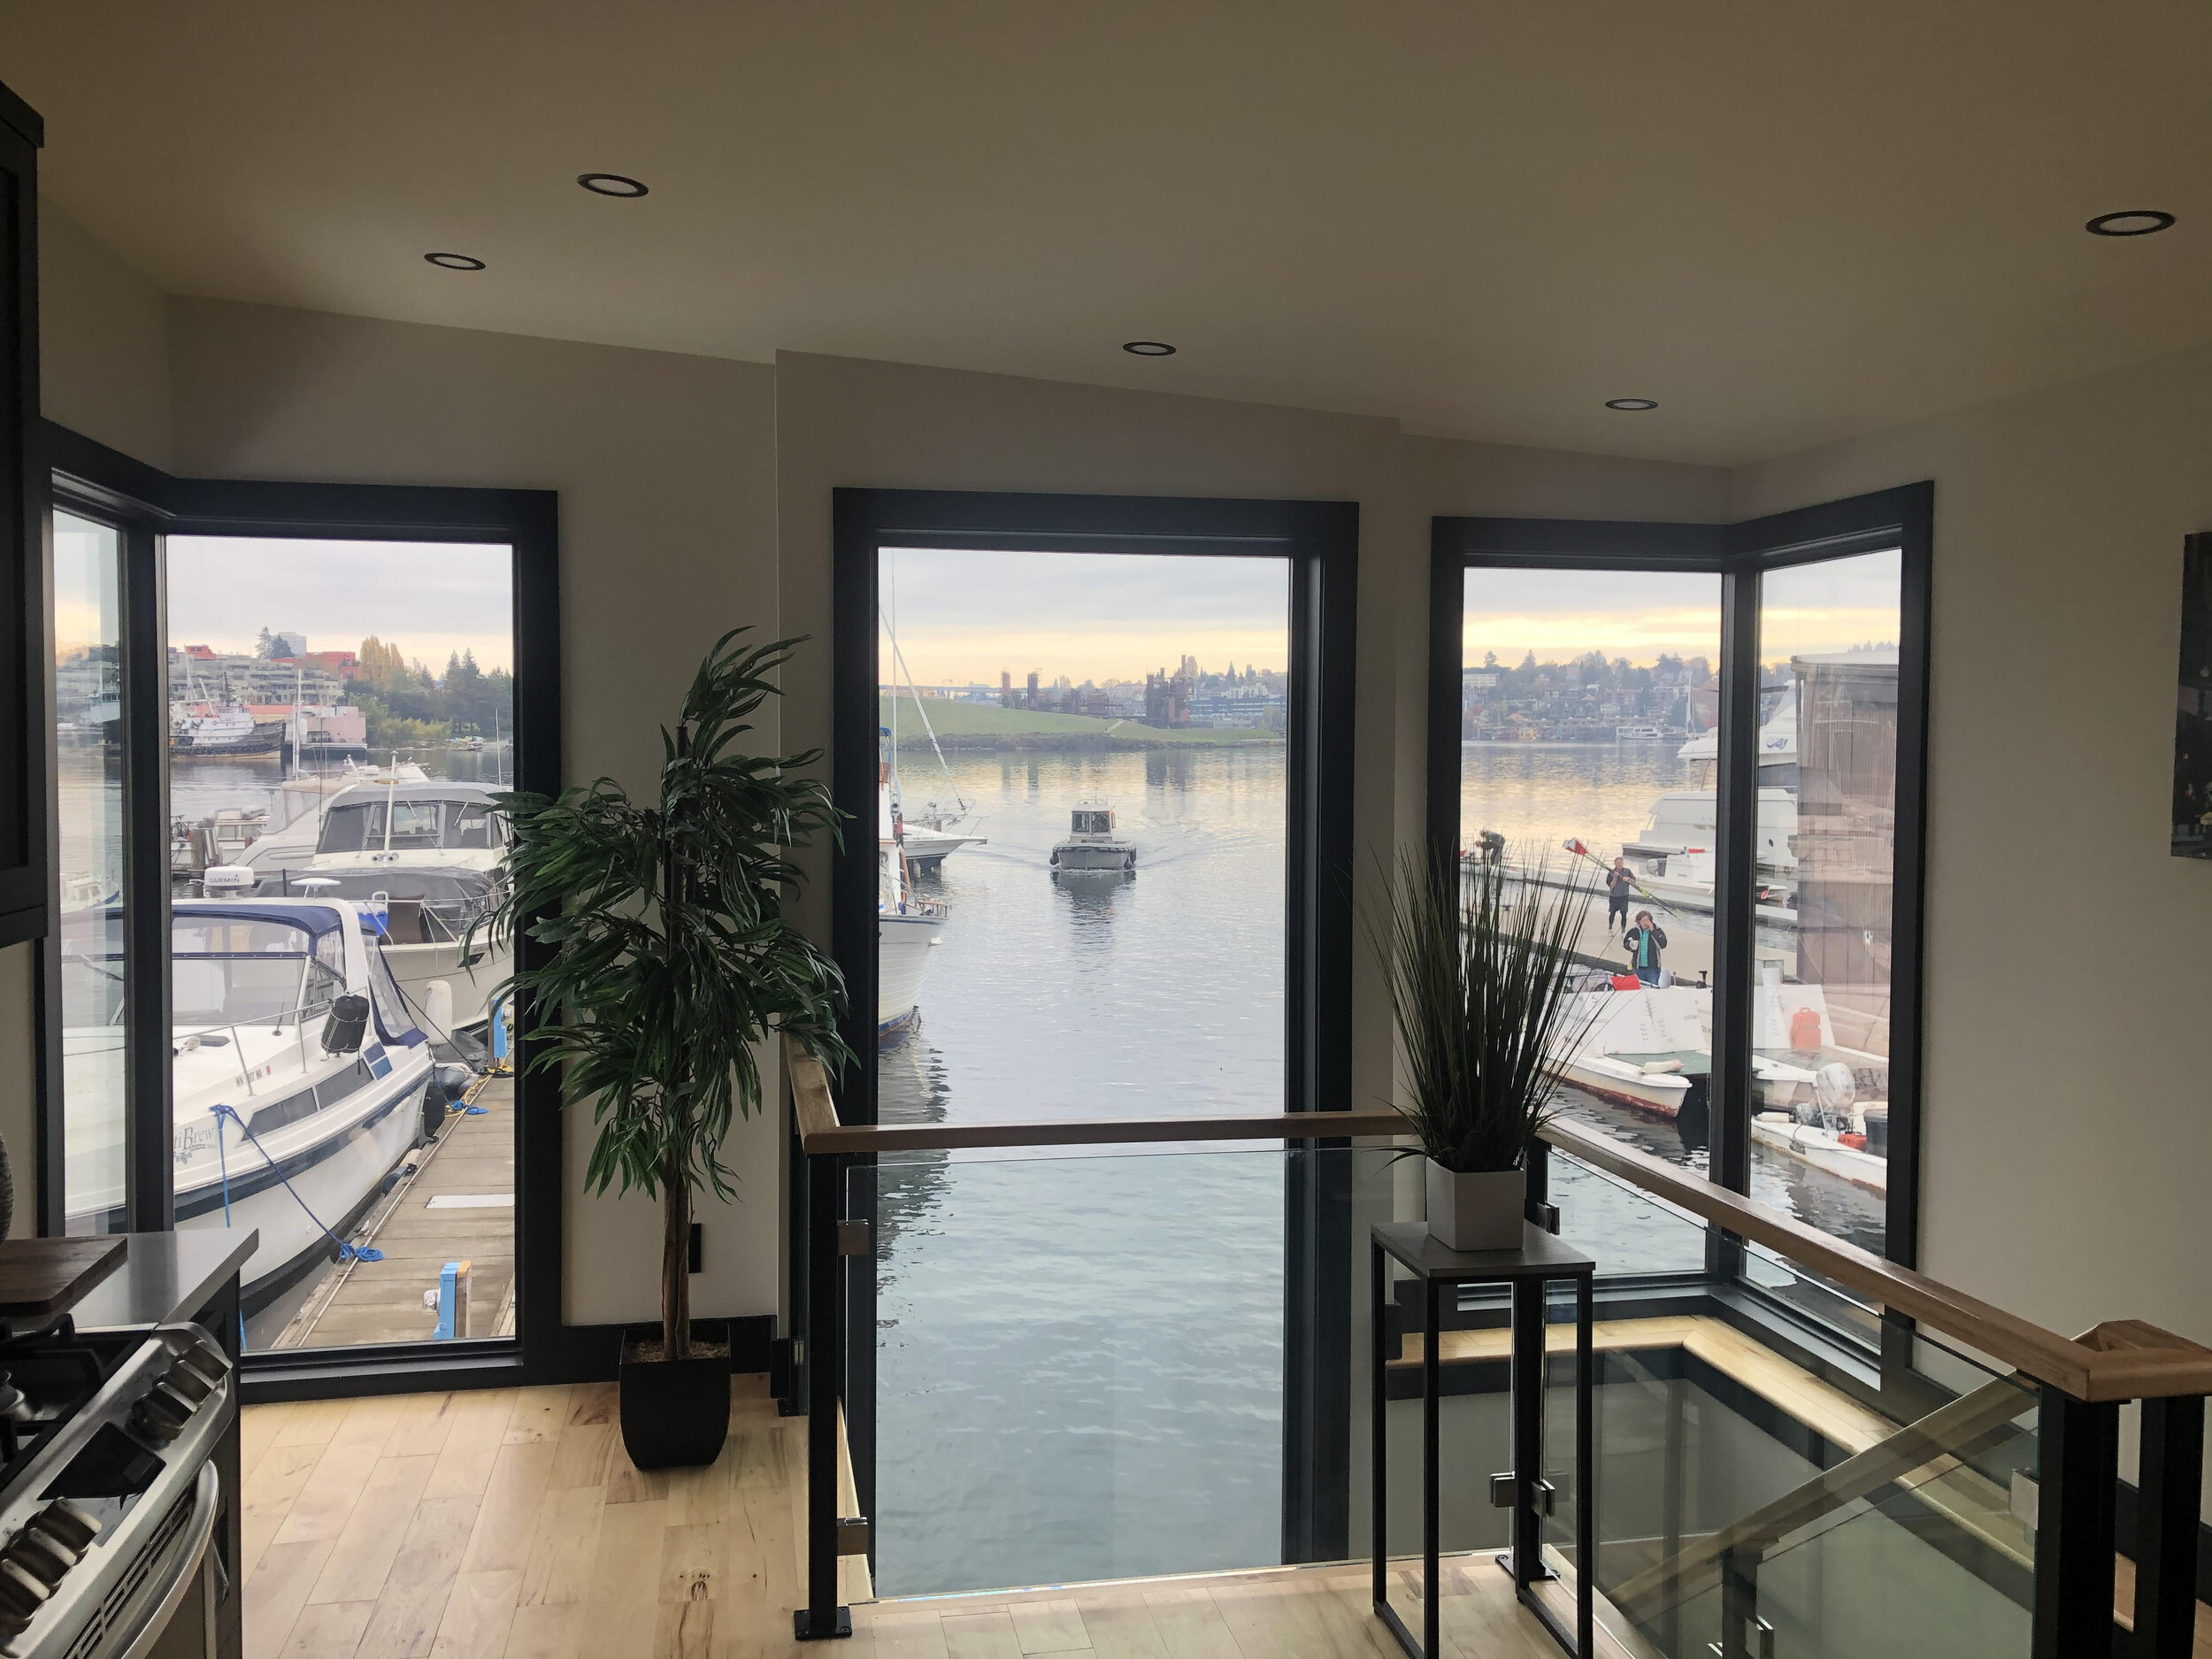 We moved Equinox - And it has a brand new, amazing view! Call us to see!